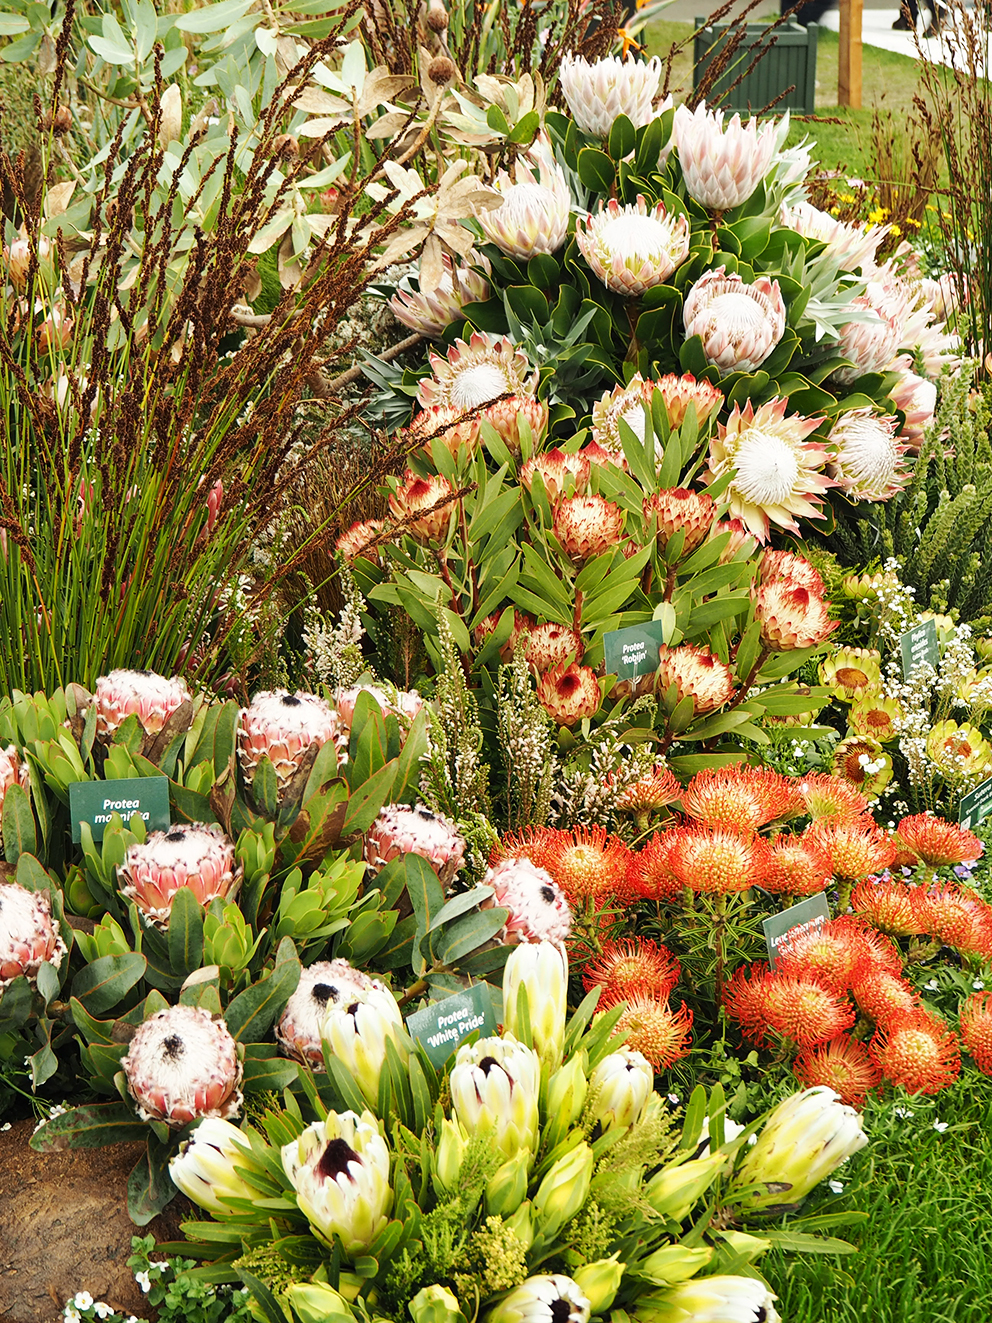 French For Pineapple Blog - RHS Chelsea Flower Show 2017 - Protea Garden